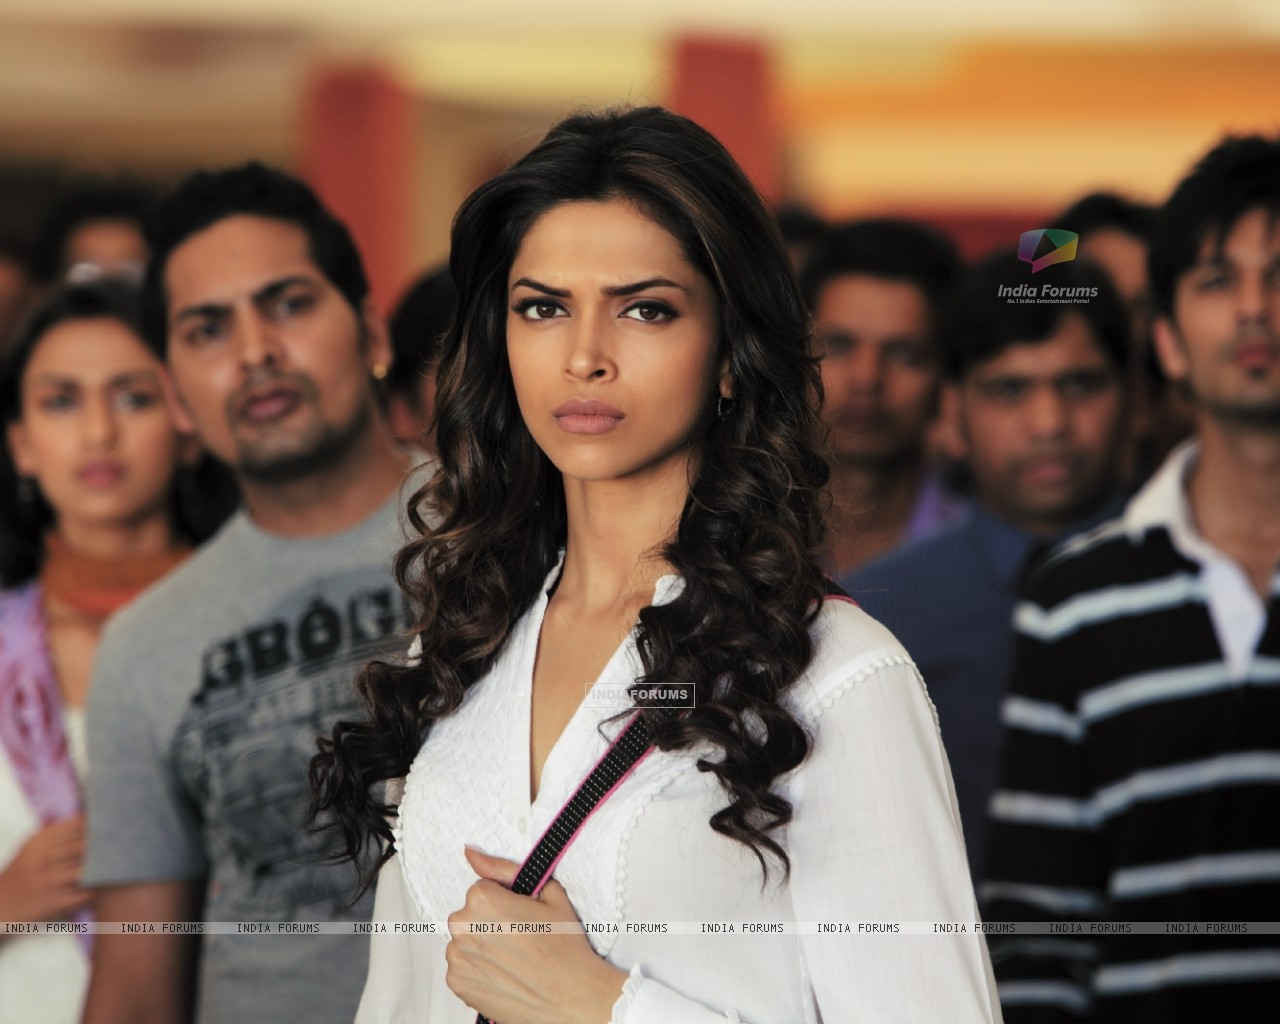 Deepika Padukone in the movie Aarakshan (147073) size:1280x1024